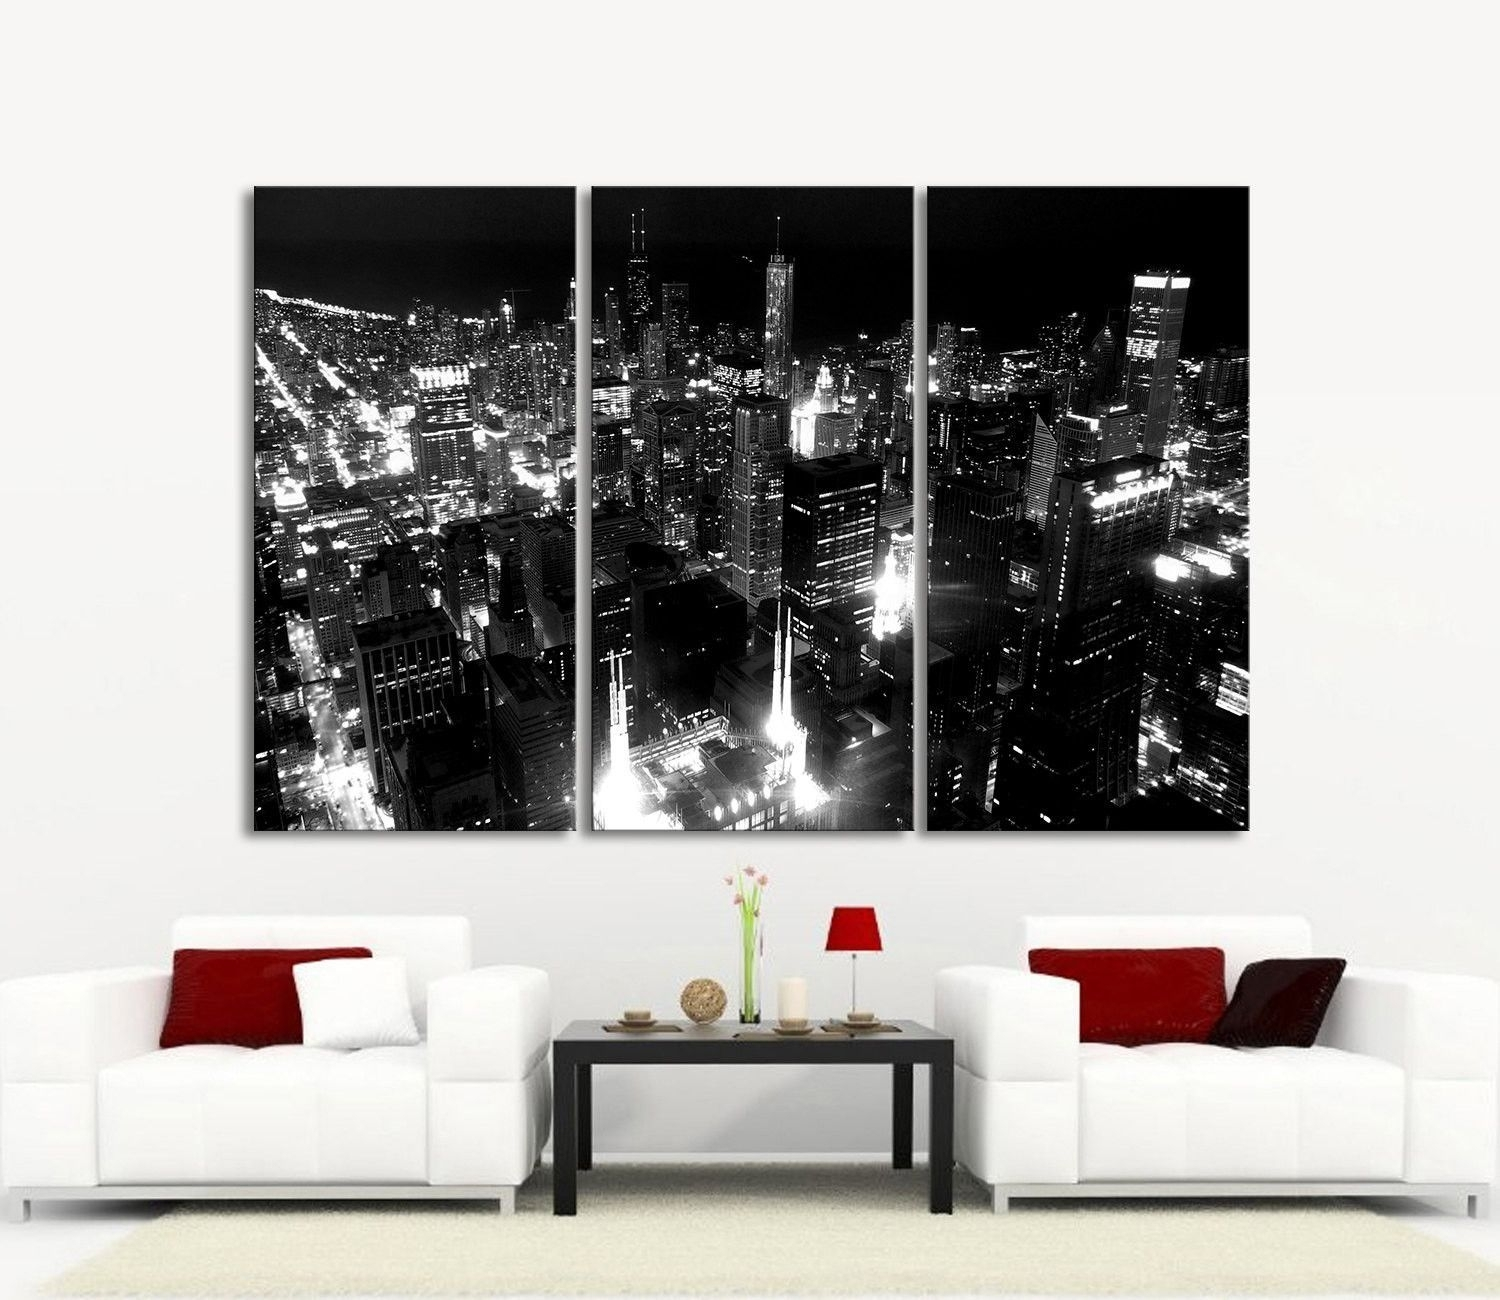 Large Wall Art Canvas Print Chicago City Skyline At Night - 3 pertaining to Most Recent Framed Canvas Art Prints